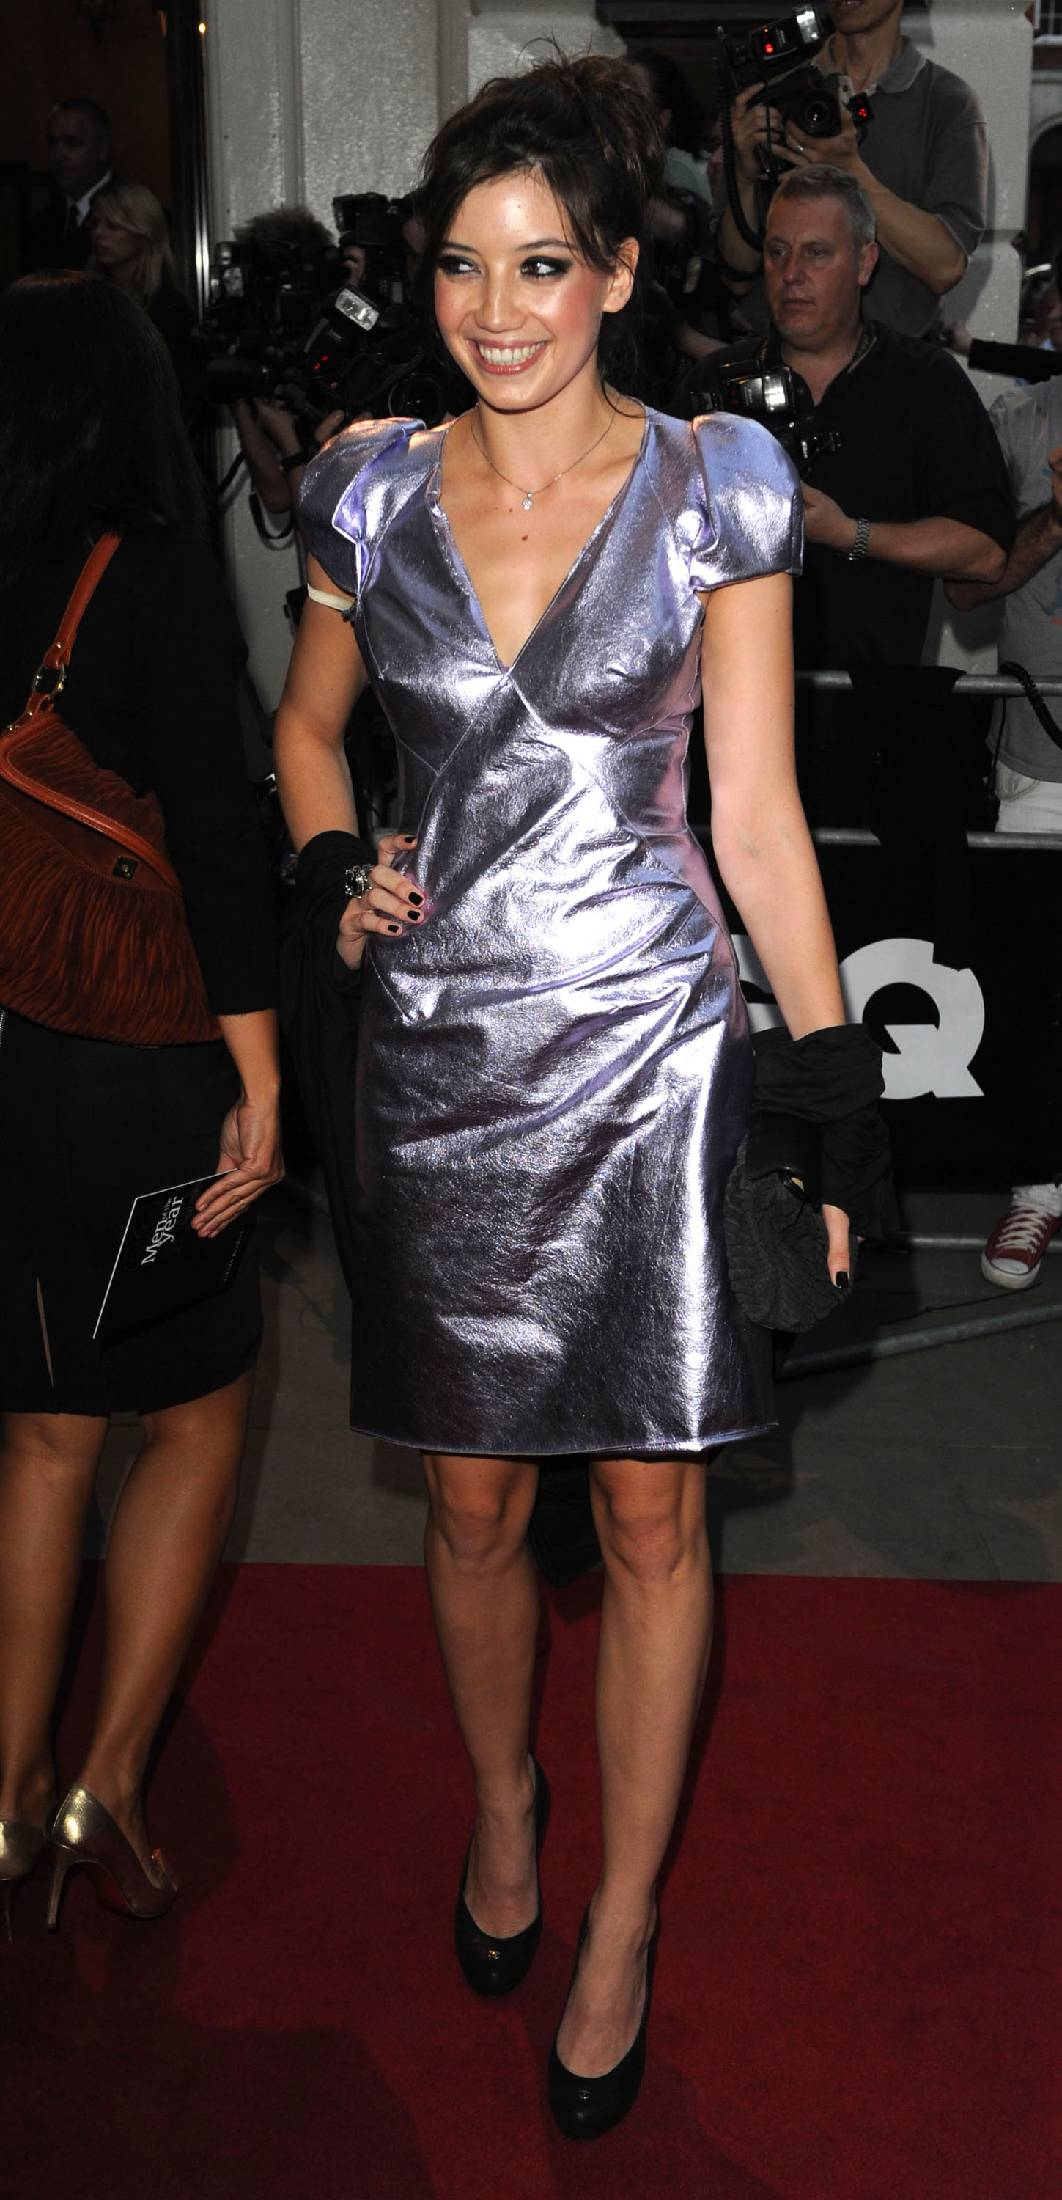 20141_Daisy_Lowe_-_GQ_Men_Of_The_Year_Awards_8th_Sept_2009_244_122_126lo.jpg